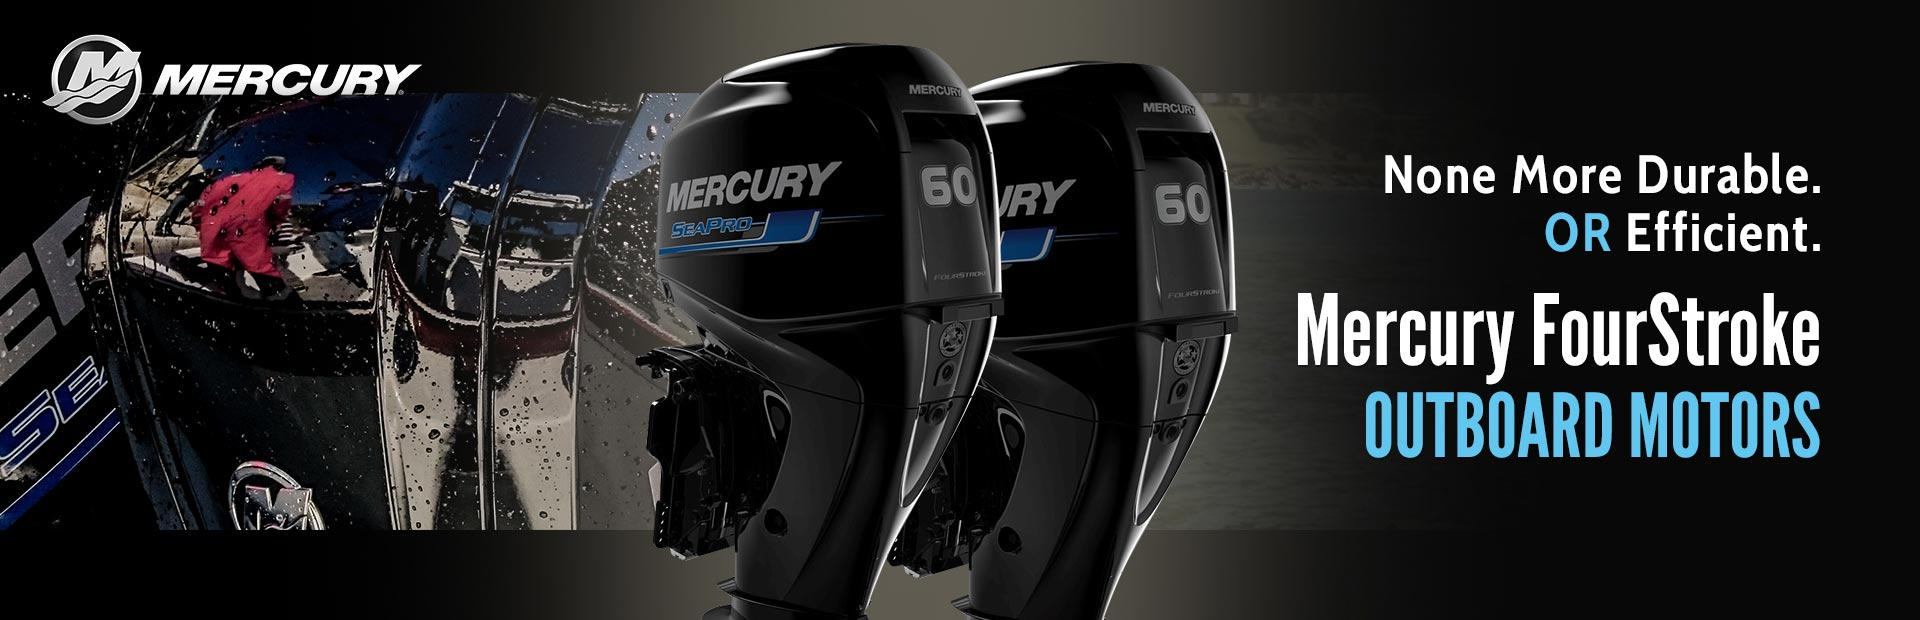 Mercury FourStroke Outboard Motors: Click here to view the models.